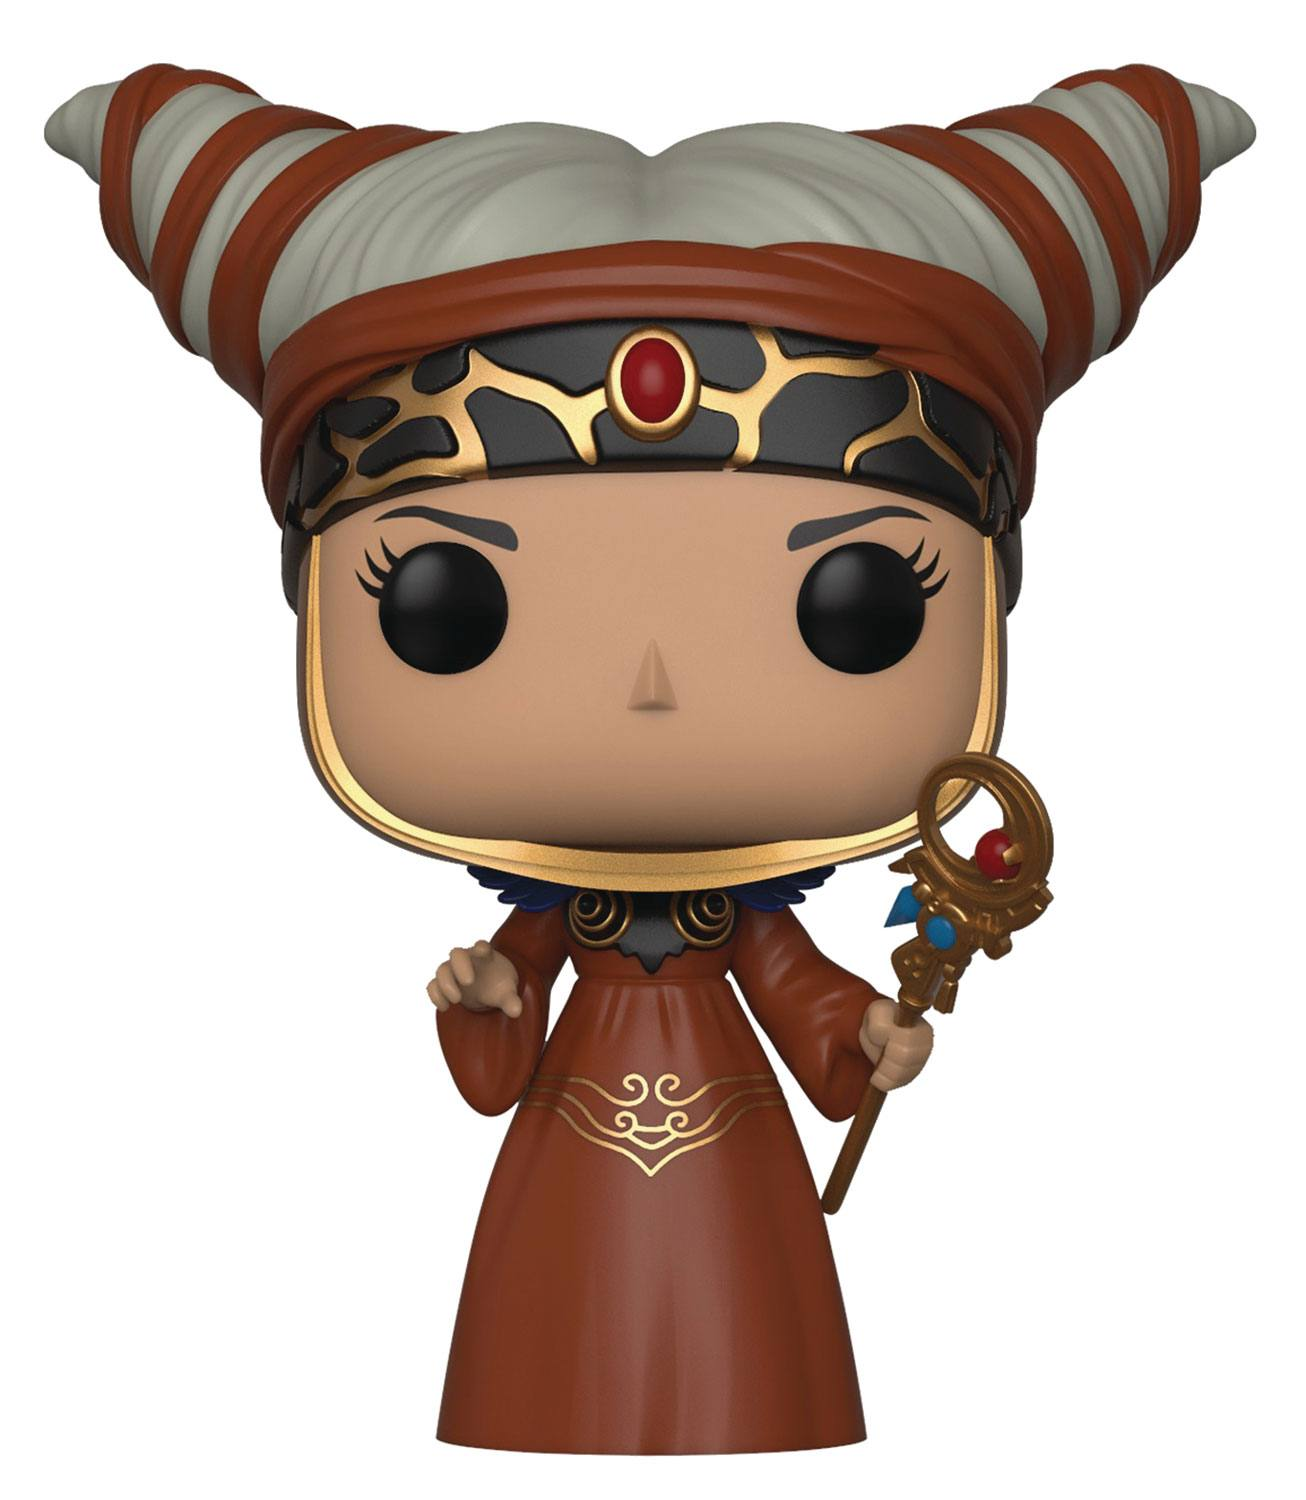 Power Rangers POP! TV Vinyl Figure Rita Repulsa 9 cm